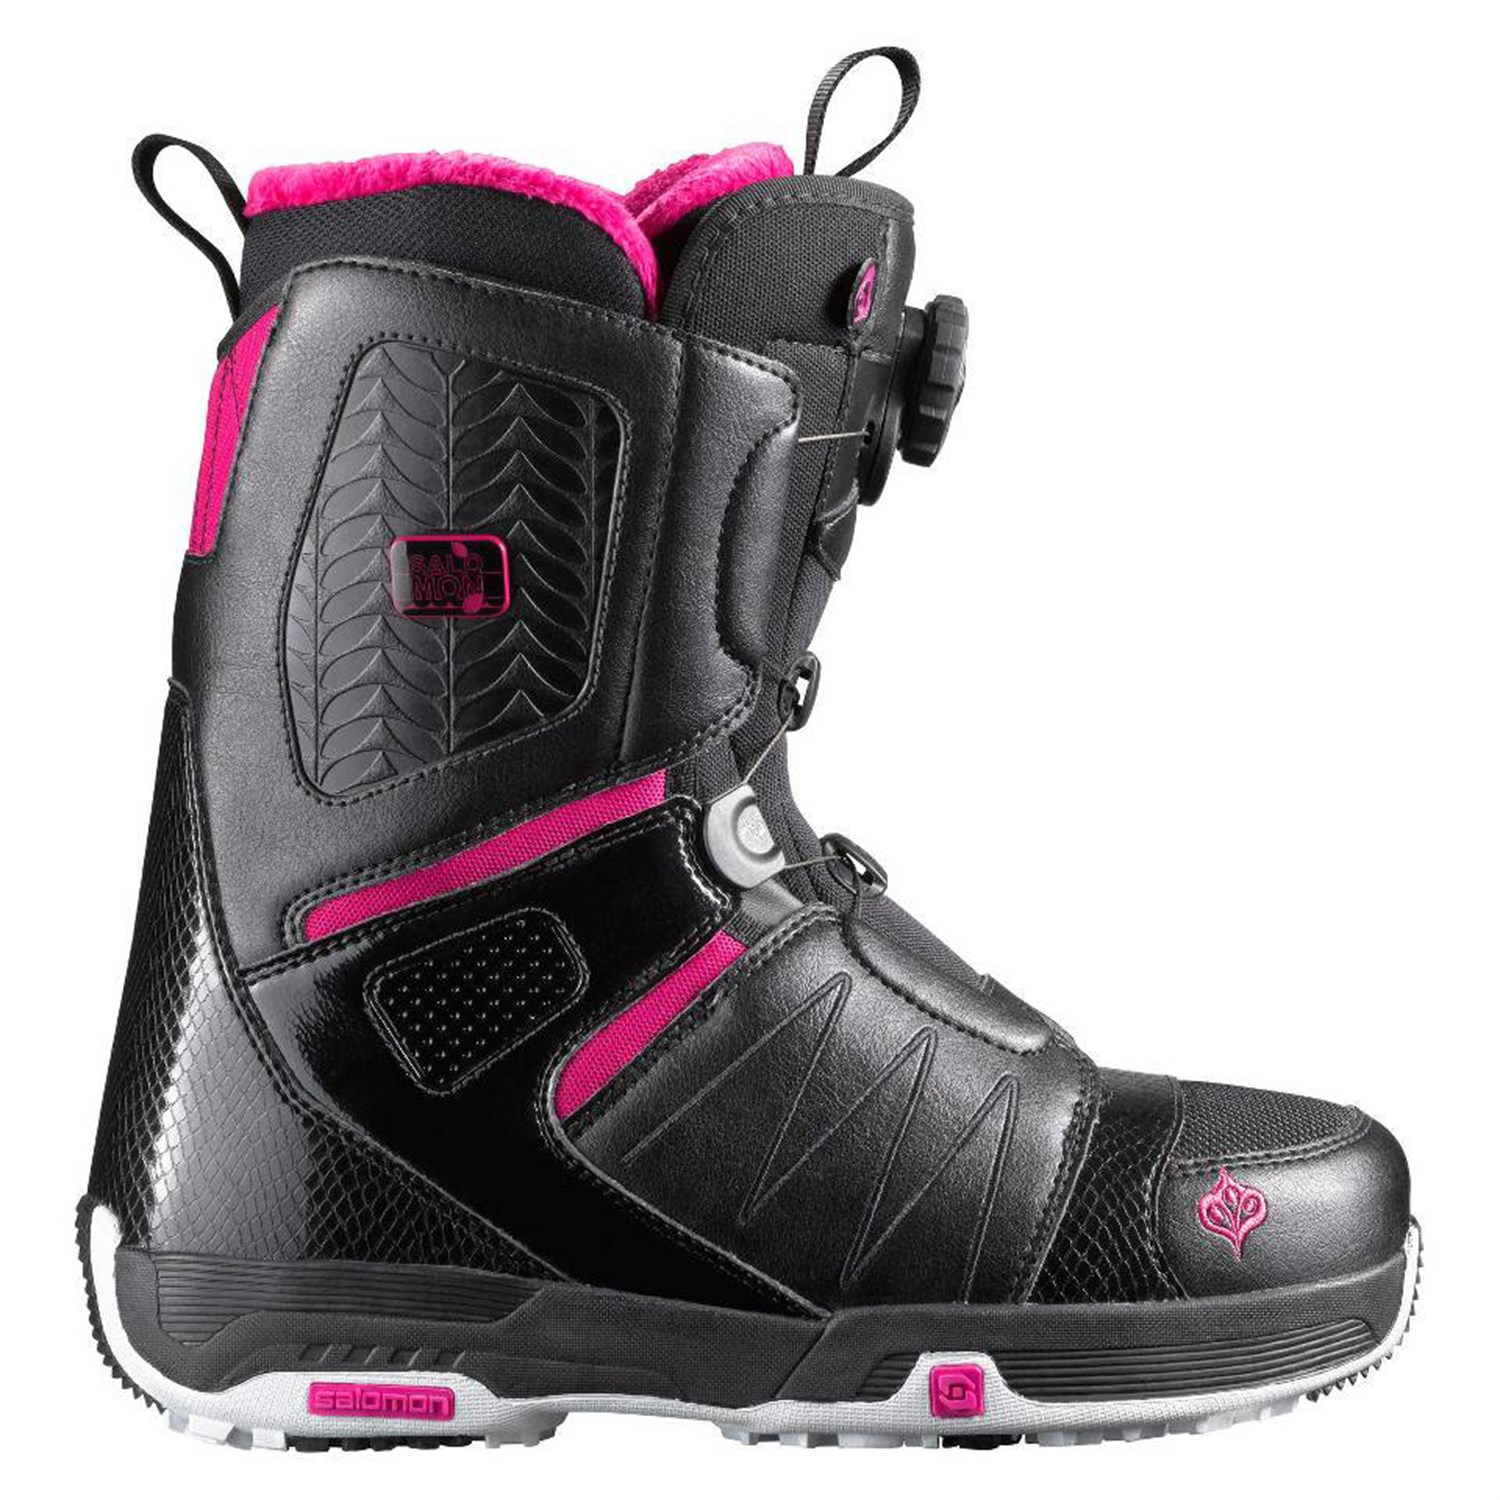 salomon pearl boa snowboard boots women 39 s 2012 evo outlet. Black Bedroom Furniture Sets. Home Design Ideas